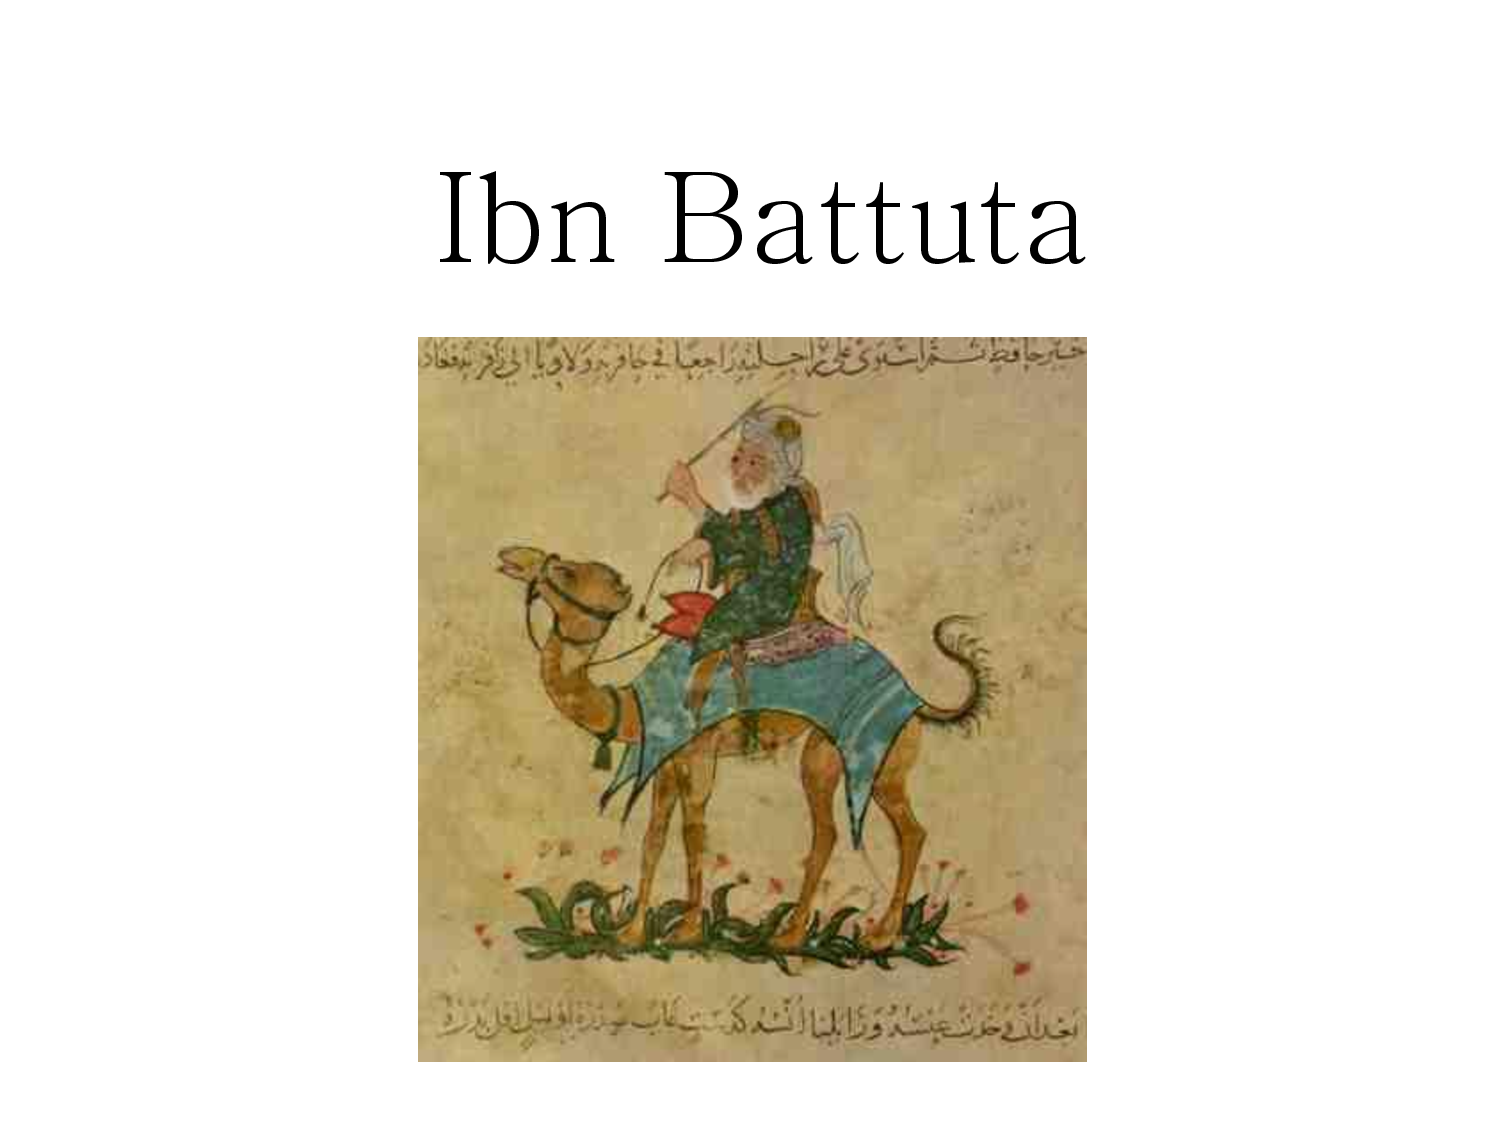 the adventures of ibn battuta a The adventures of ibn battuta: a muslim traveler of the fourteenth century, with a new preface [ross e dunn] on amazoncom free shipping on qualifying offers ross dunn here recounts.